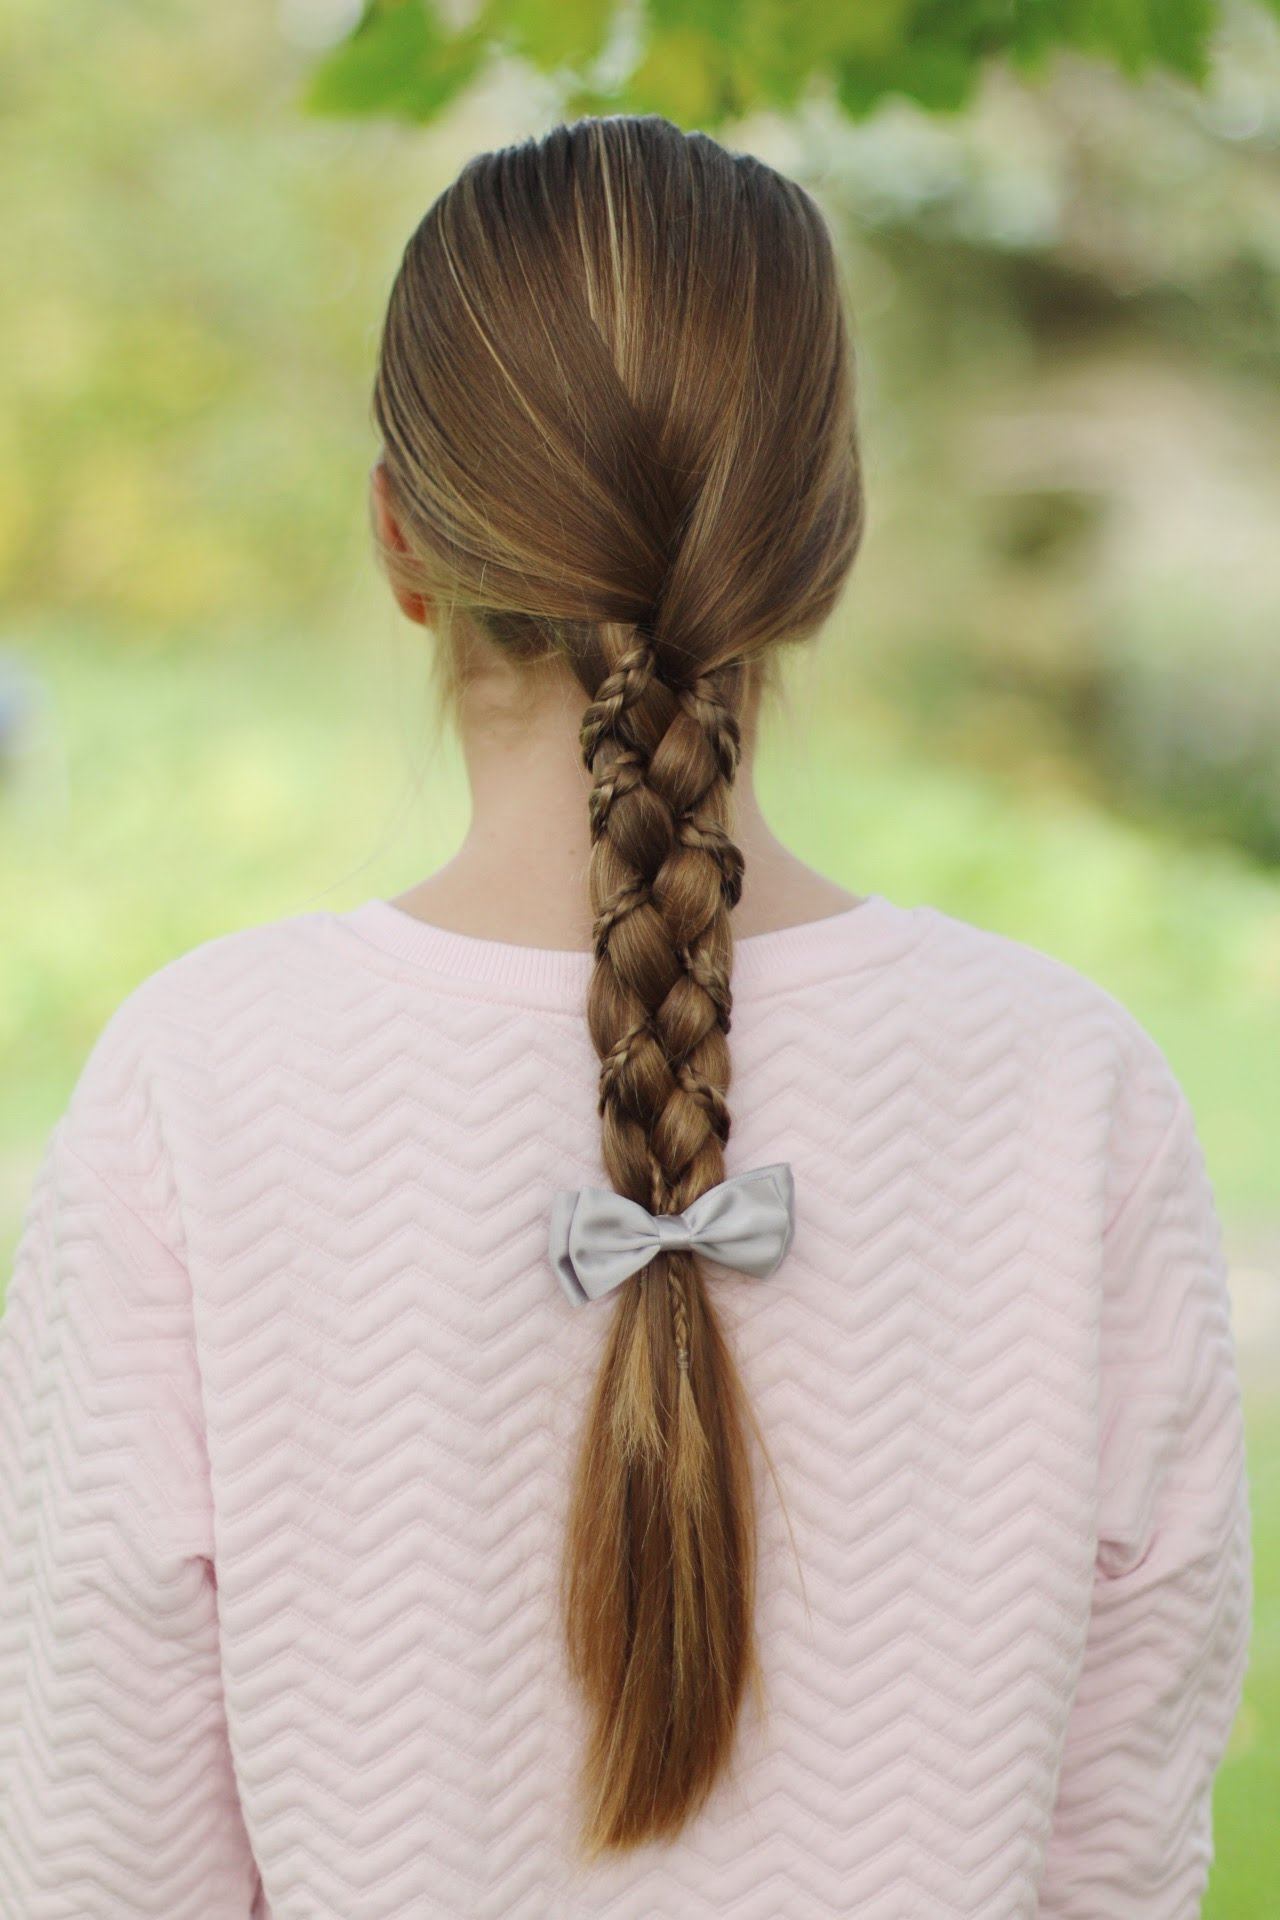 Explore Intended For Widely Used Back And Forth Skinny Braided Hairstyles (View 16 of 20)